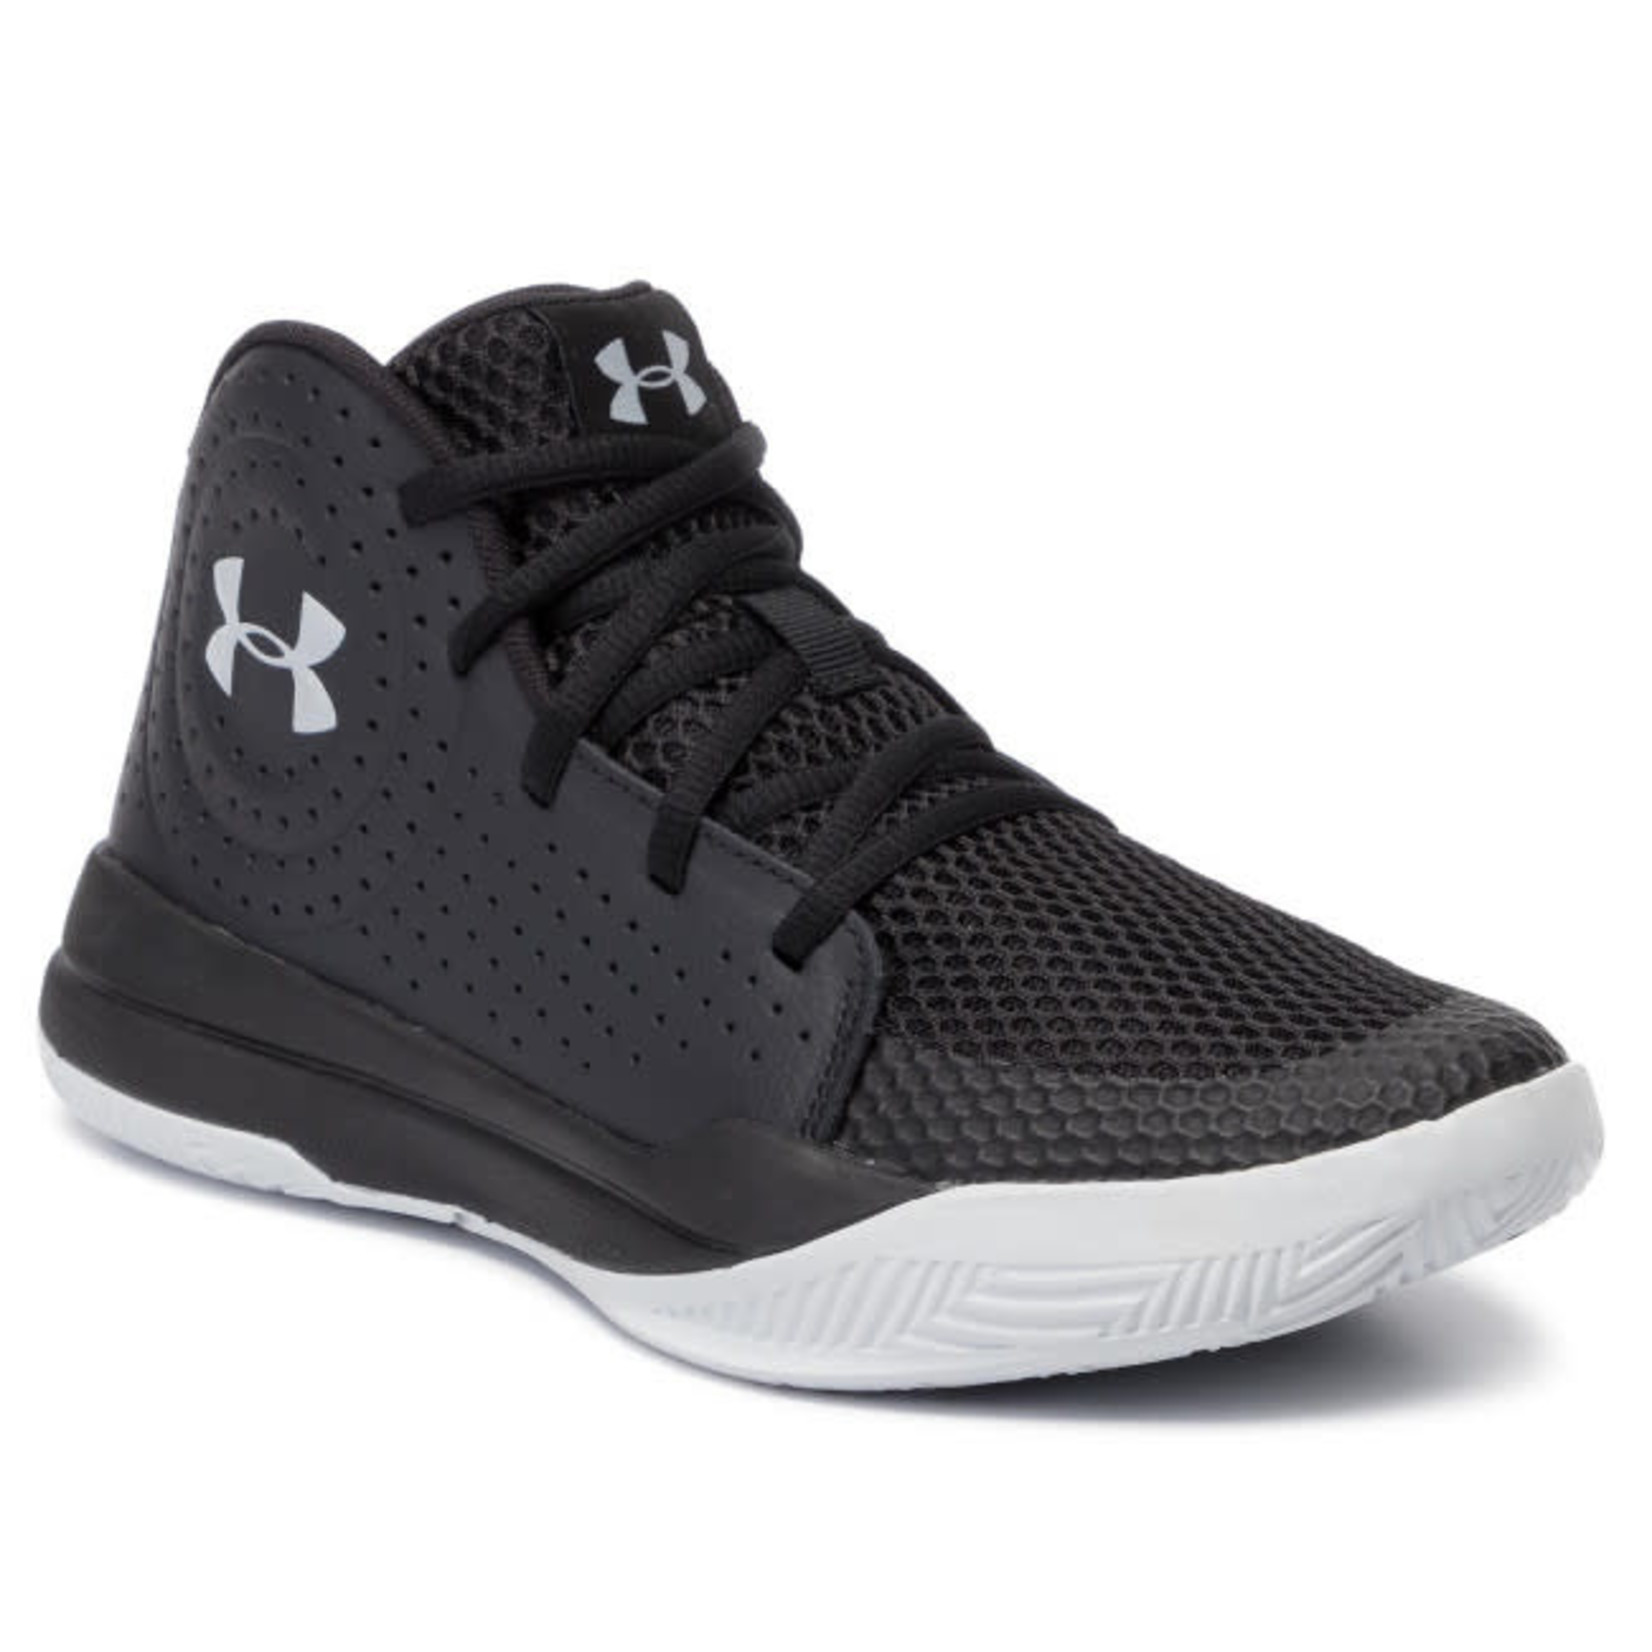 Under Armour Under Armour Basketball Shoes, Jet, Boys